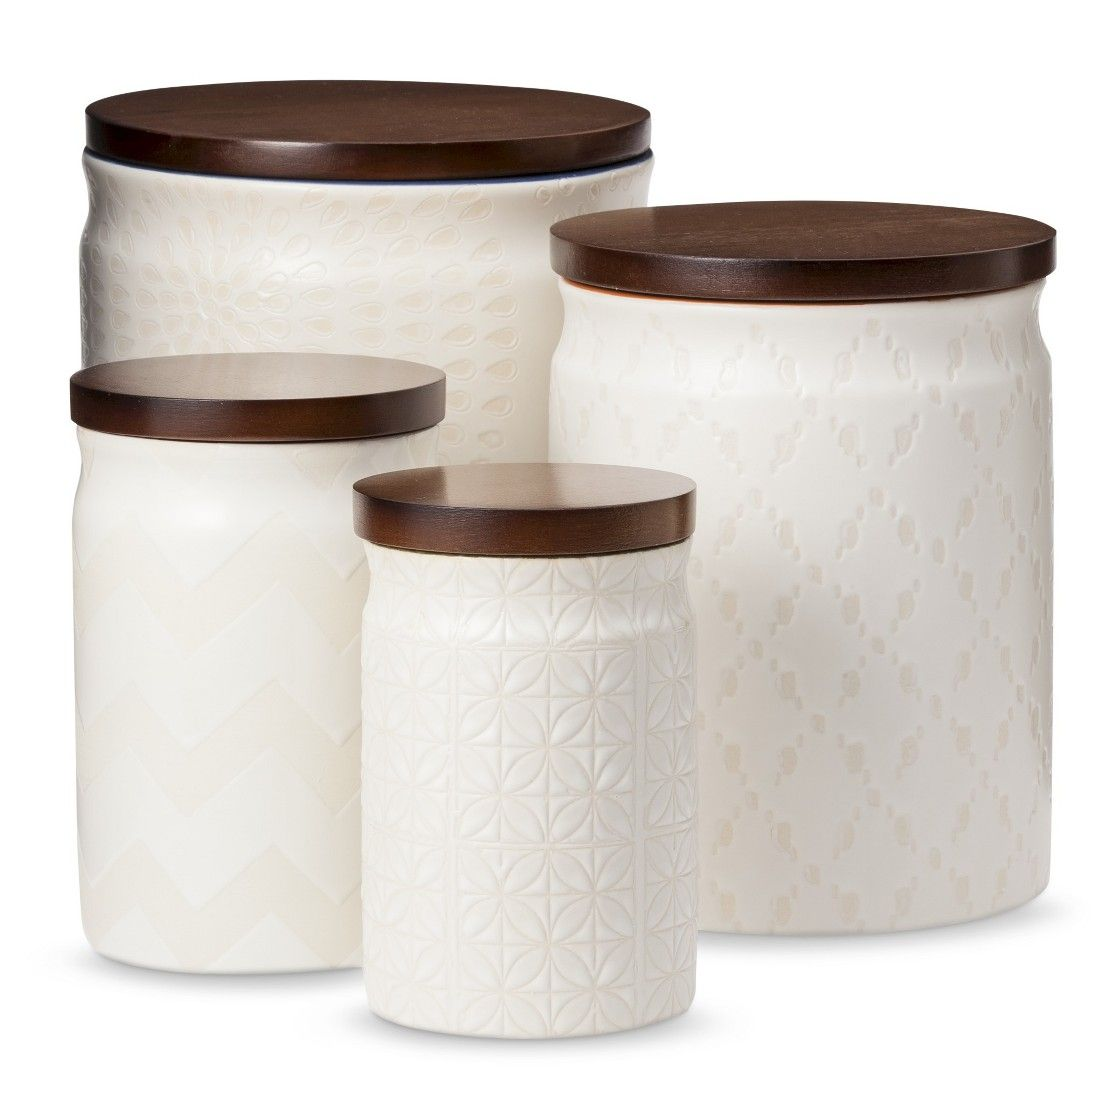 Threshold Canister With Wood Lid. I NEED THESE! $9.99-$17.99 ...